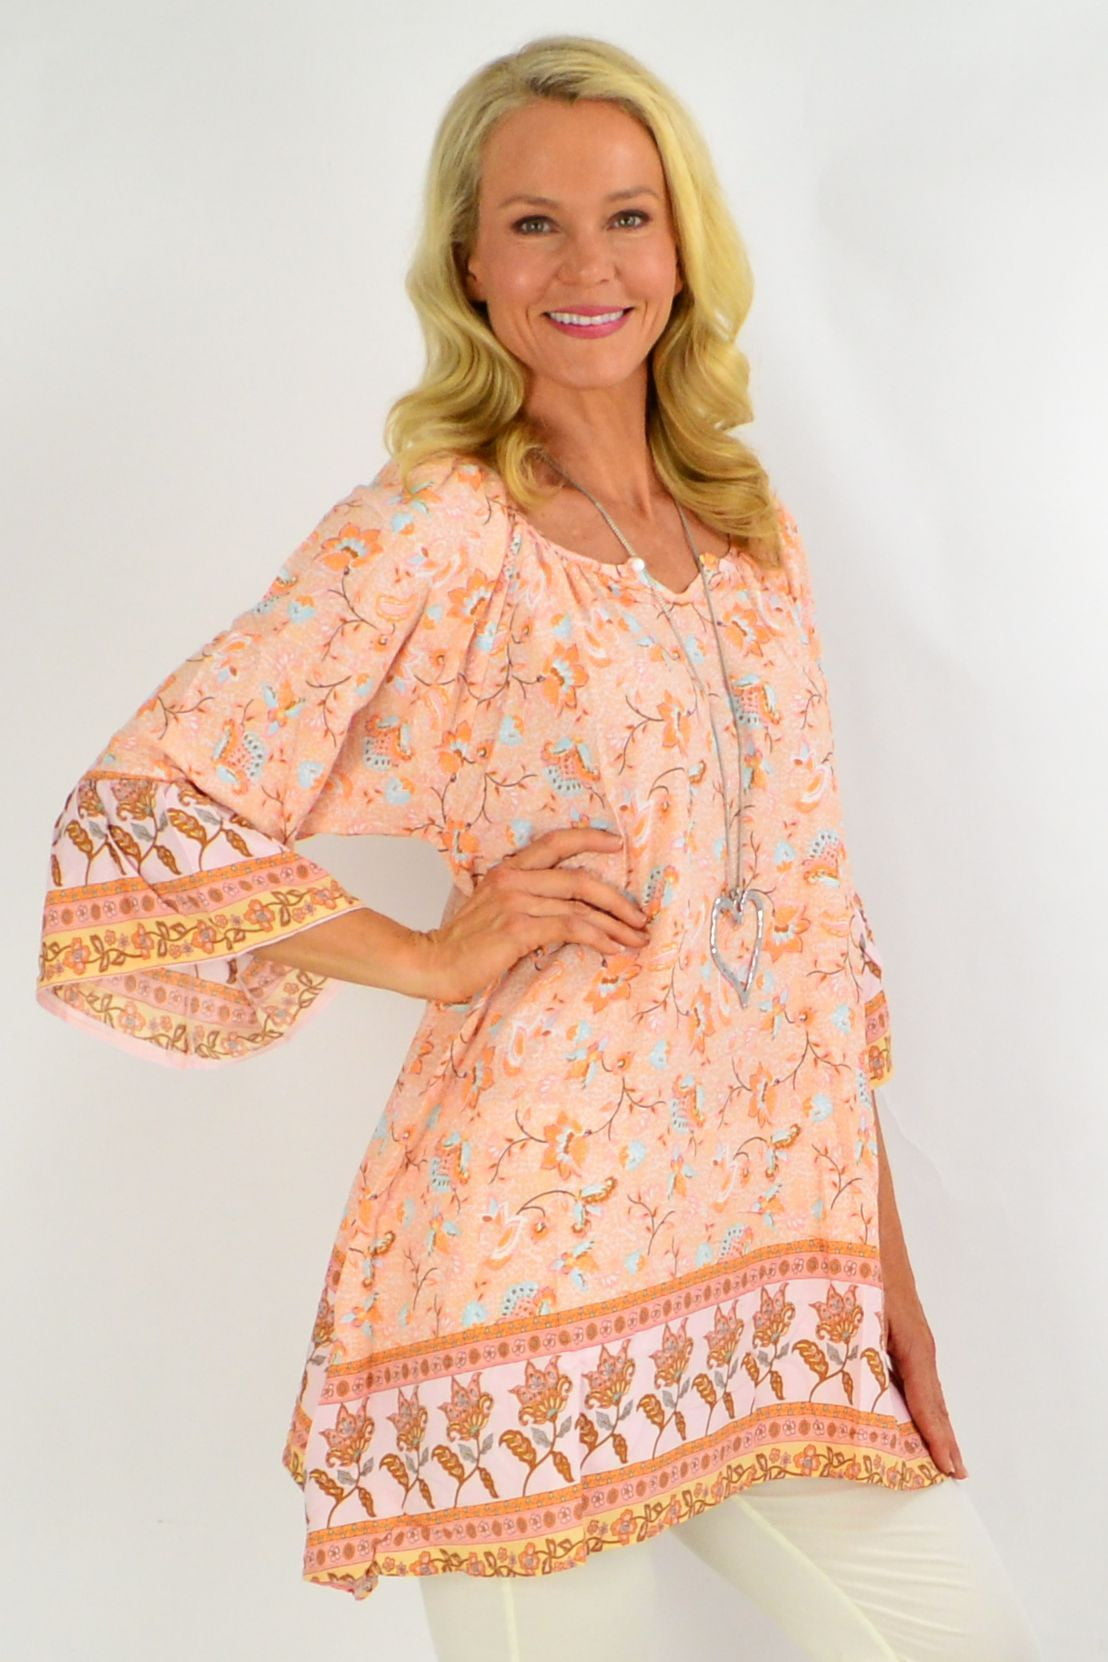 Apricot Floral Light & Pretty Tunic Top | I Love Tunics | Tunic Tops | Tunic | Tunic Dresses  | womens clothing online